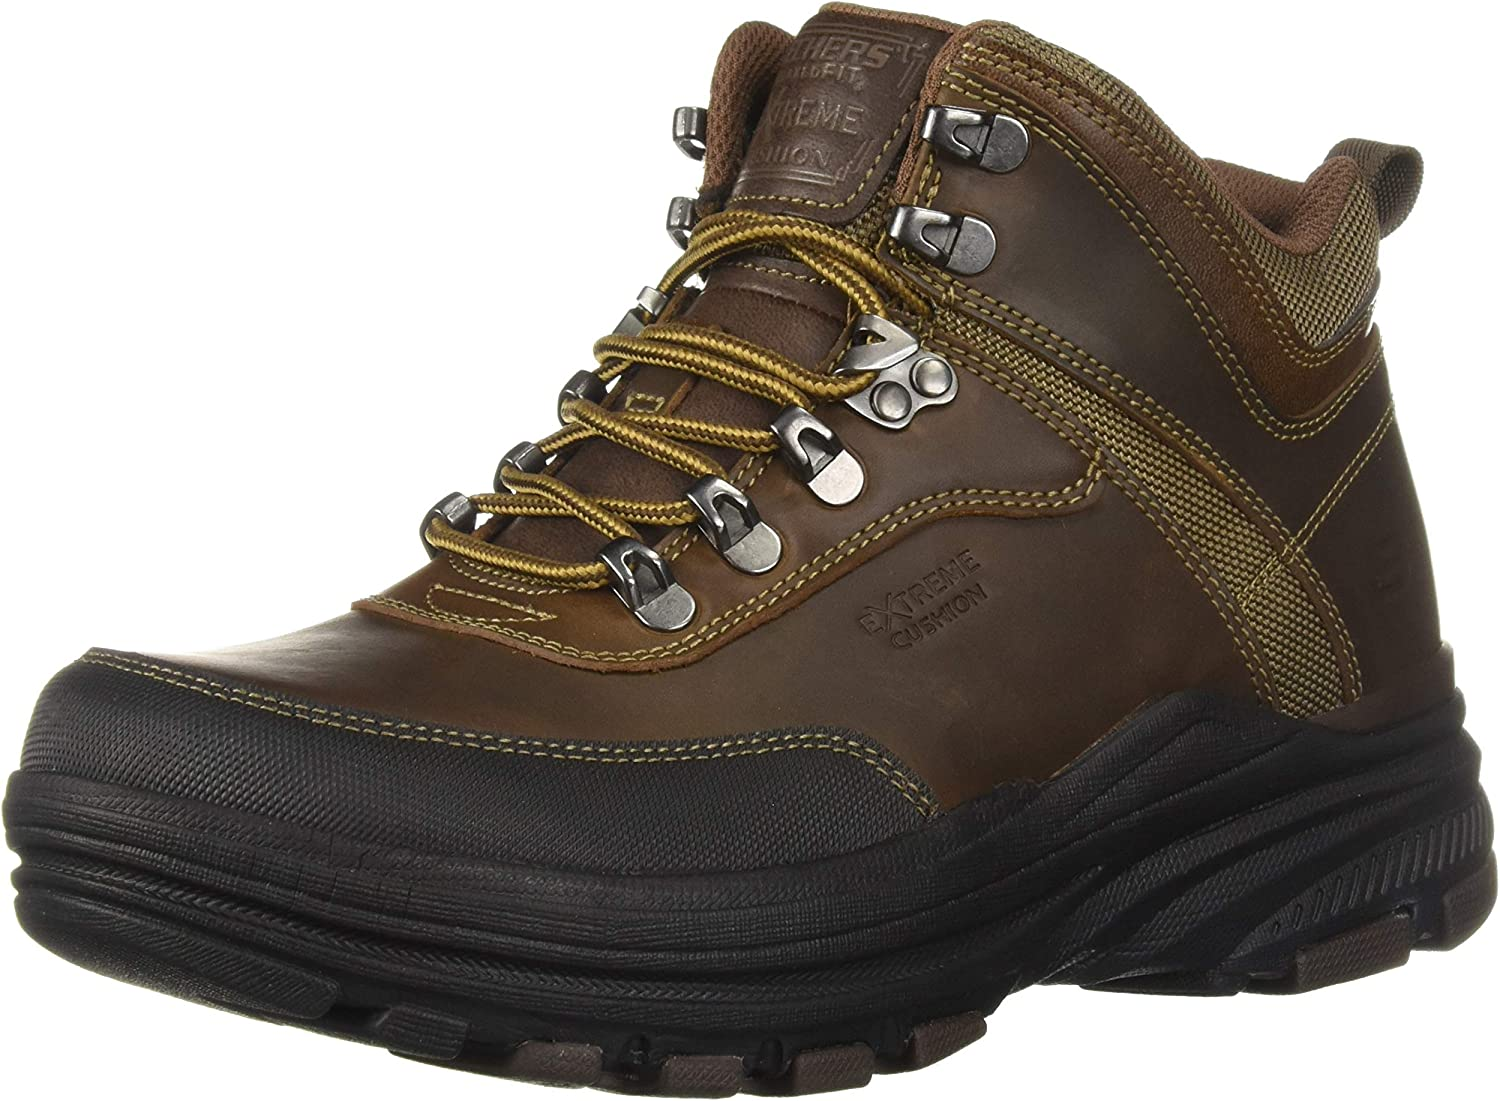 Skechers Mens Holdren- Brenton Chukka Boot